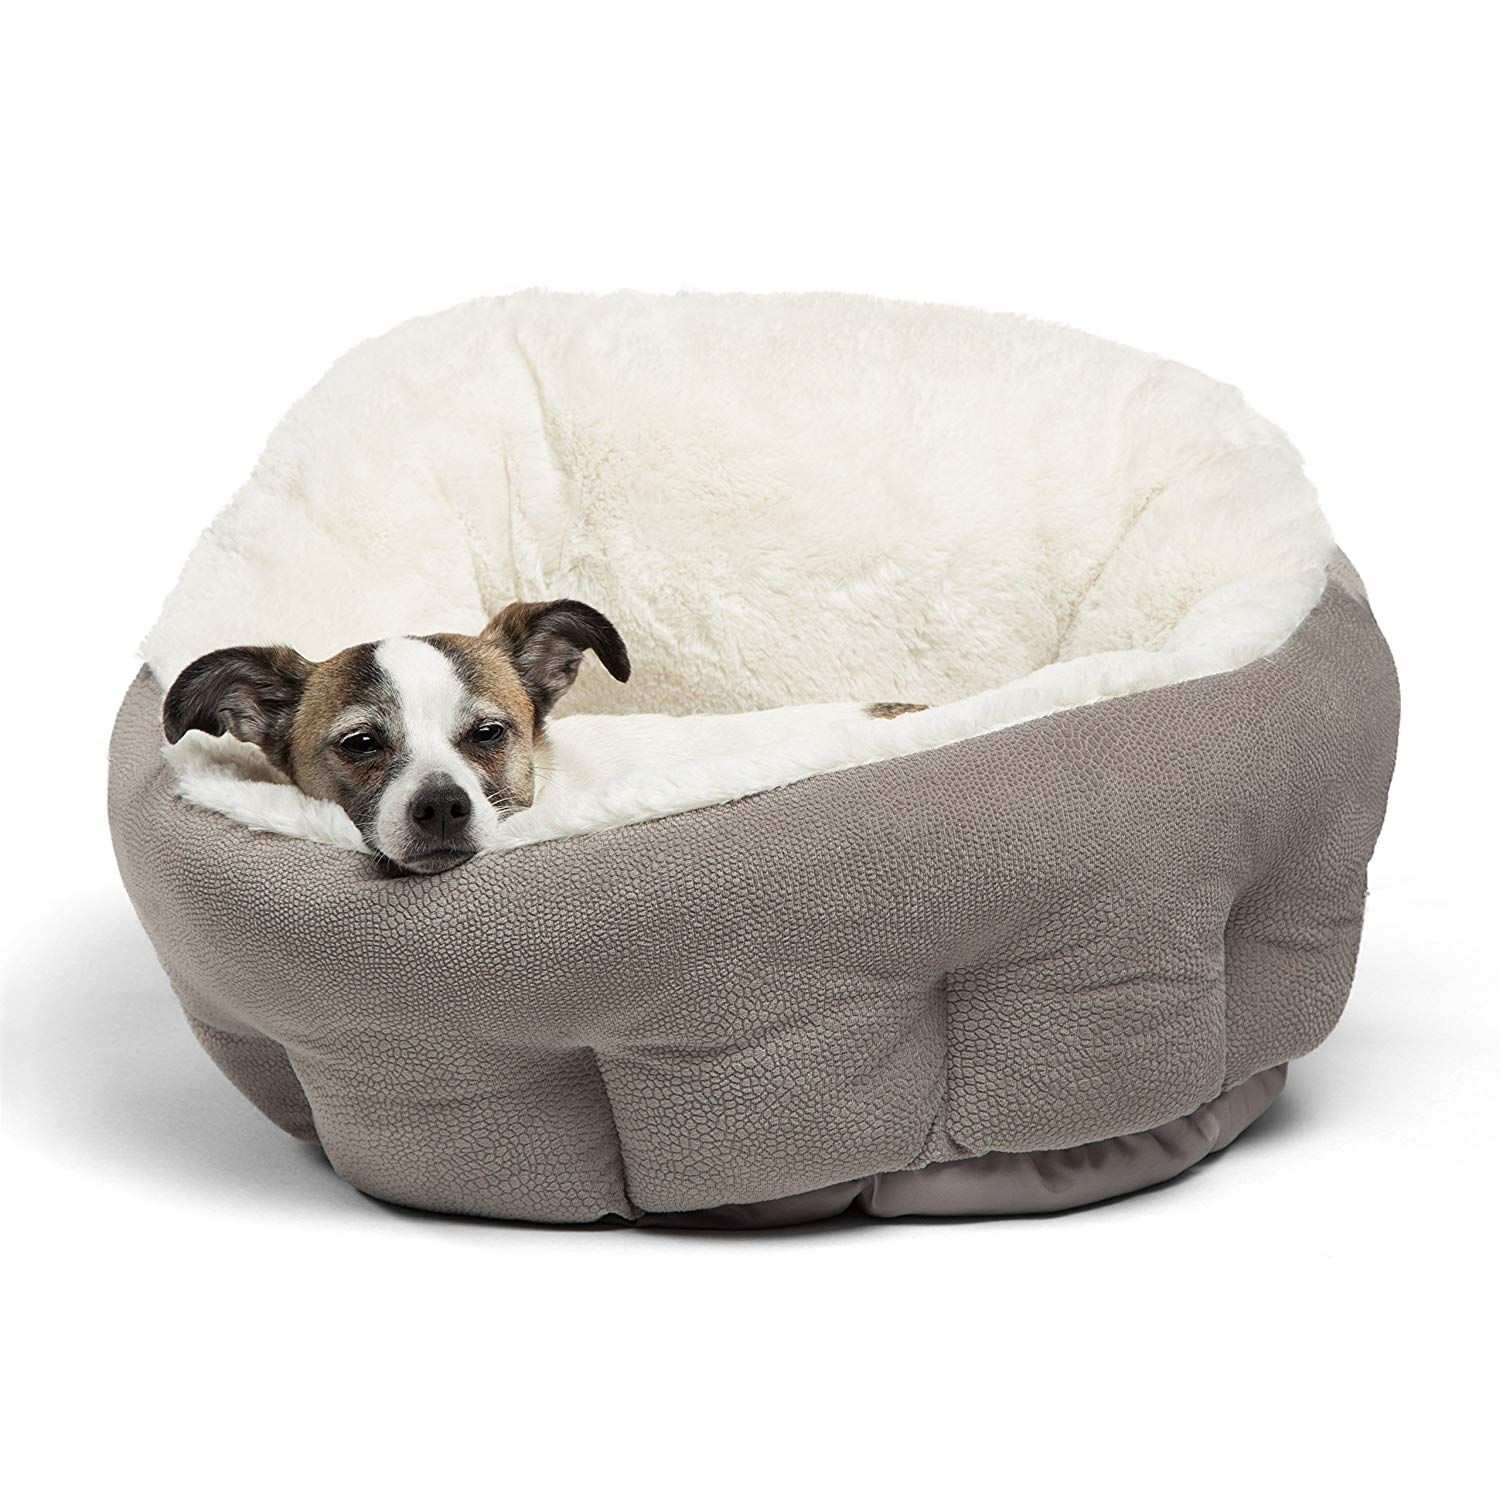 Dogs Bed For Small Dogs Gatos